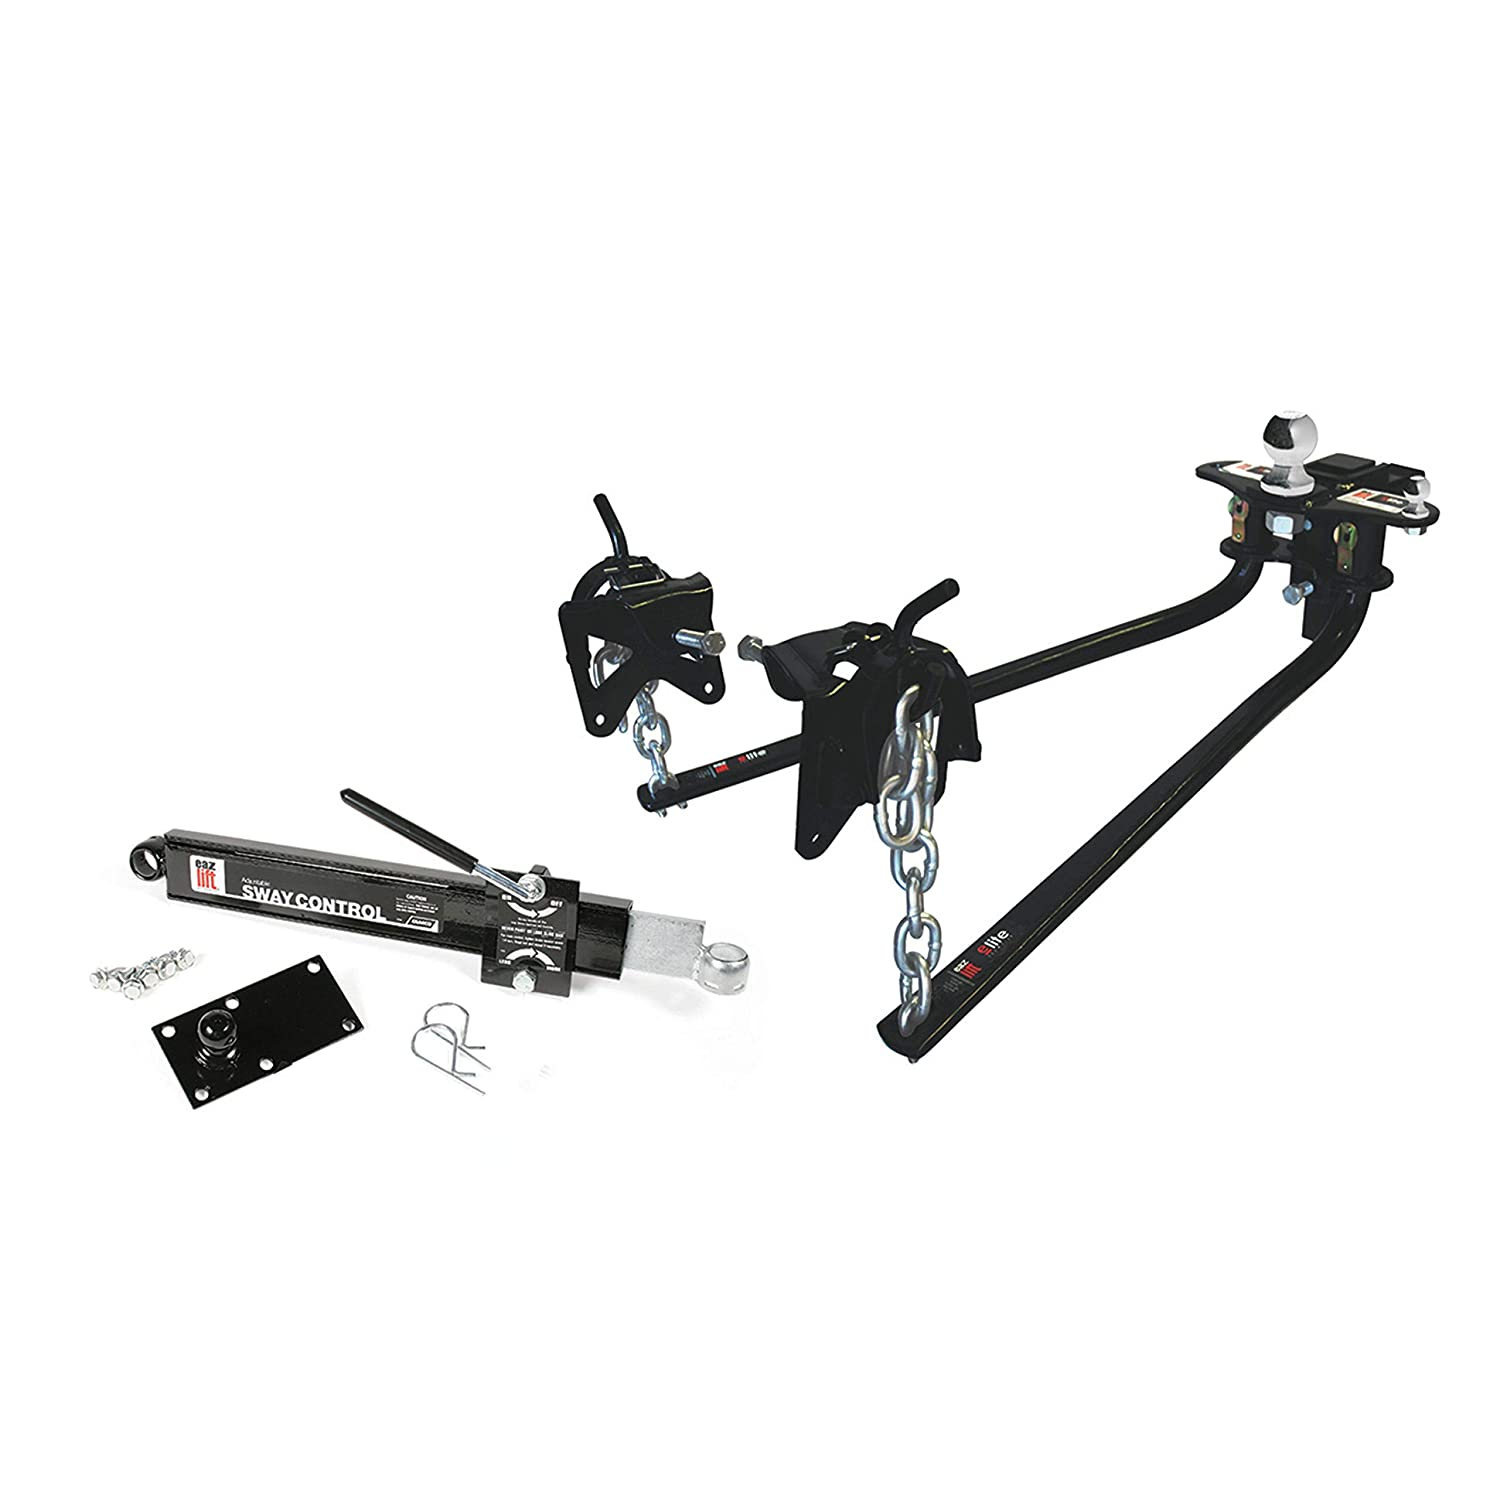 "EAZ LIFT 48069 1200 lbs Elite Kit, Includes Distribution, Sway Control and 2-5/16"" Hitch Ball-1,200 lbs Tongue Weight Capacity (48069)"